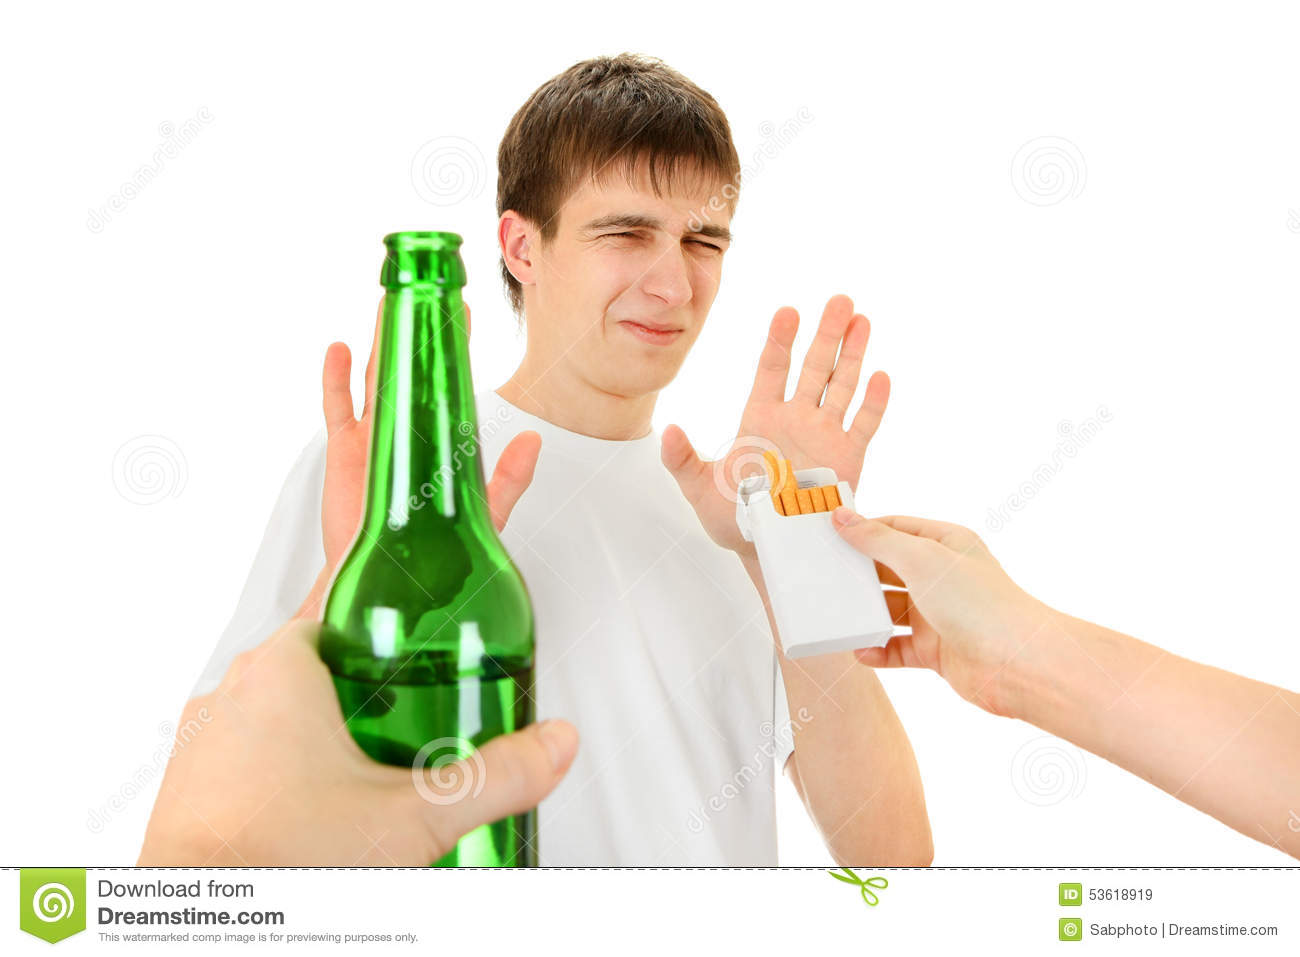 Teenager Refuse A Cigarette And Beer Stock Photo Image  : teenager refuse cigarette beer isolated white background 53618919 from www.dreamstime.com size 1300 x 957 jpeg 82kB